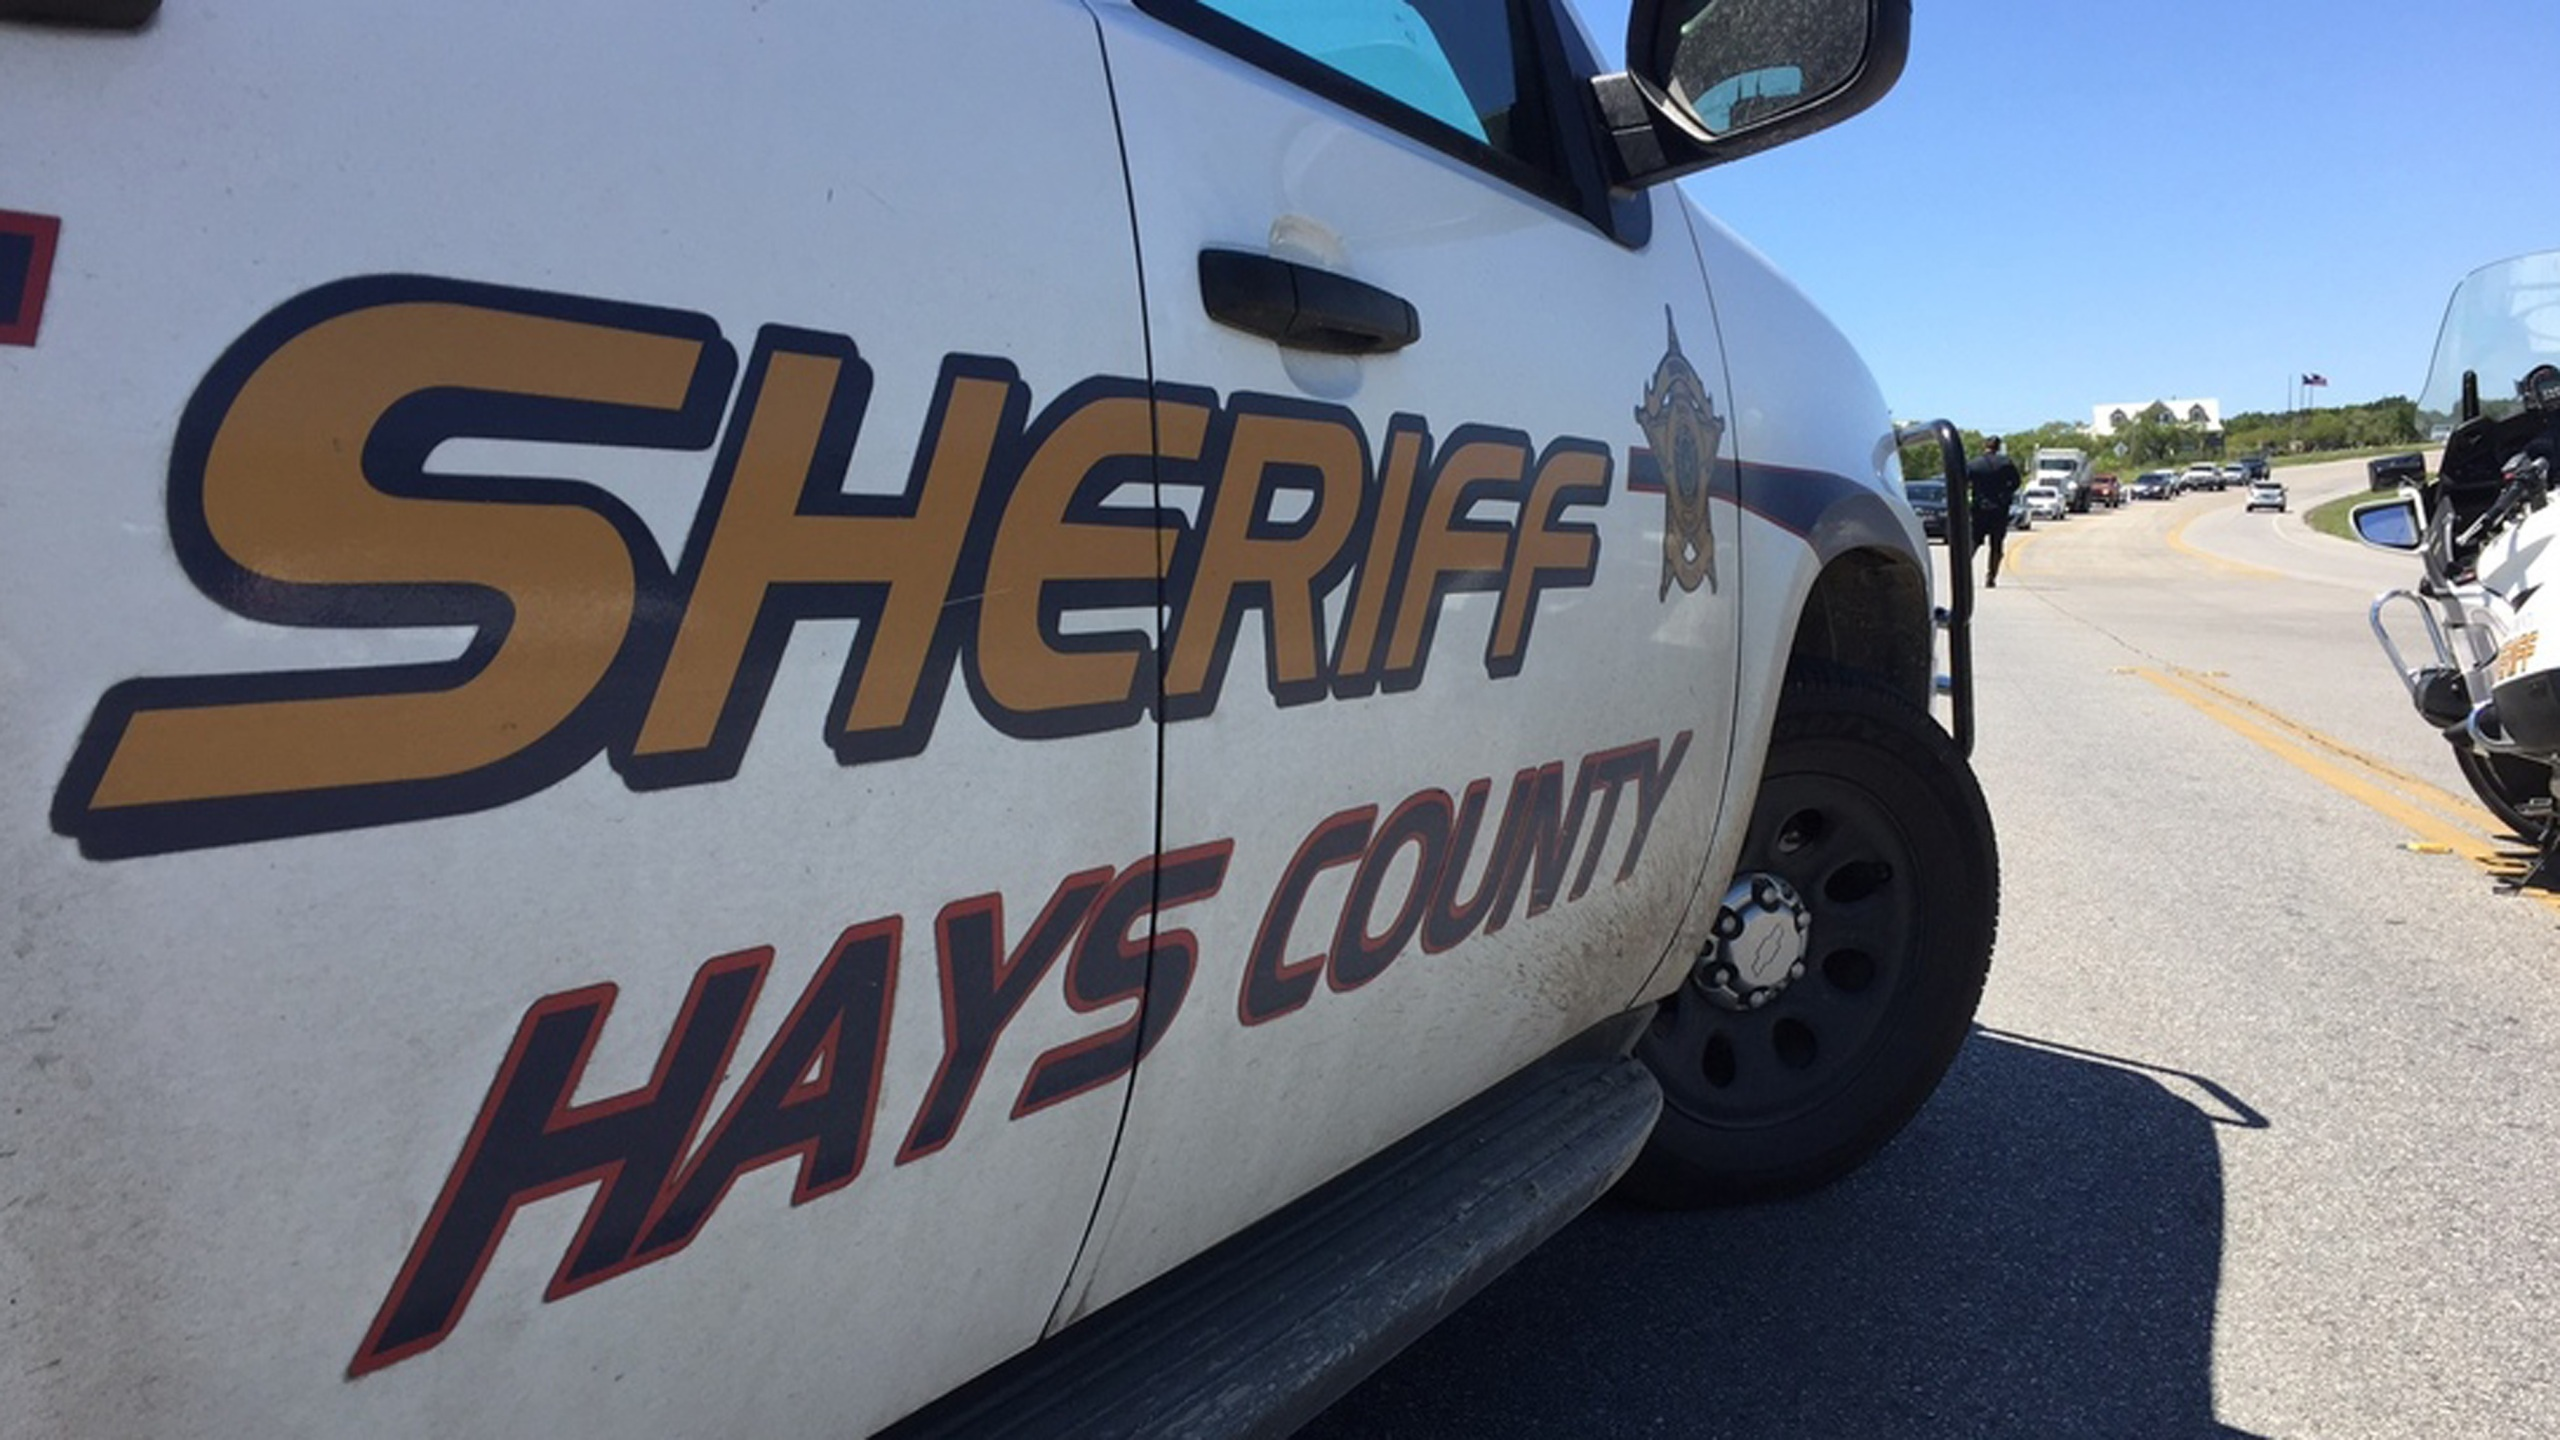 Hays County Sheriff's office file photo